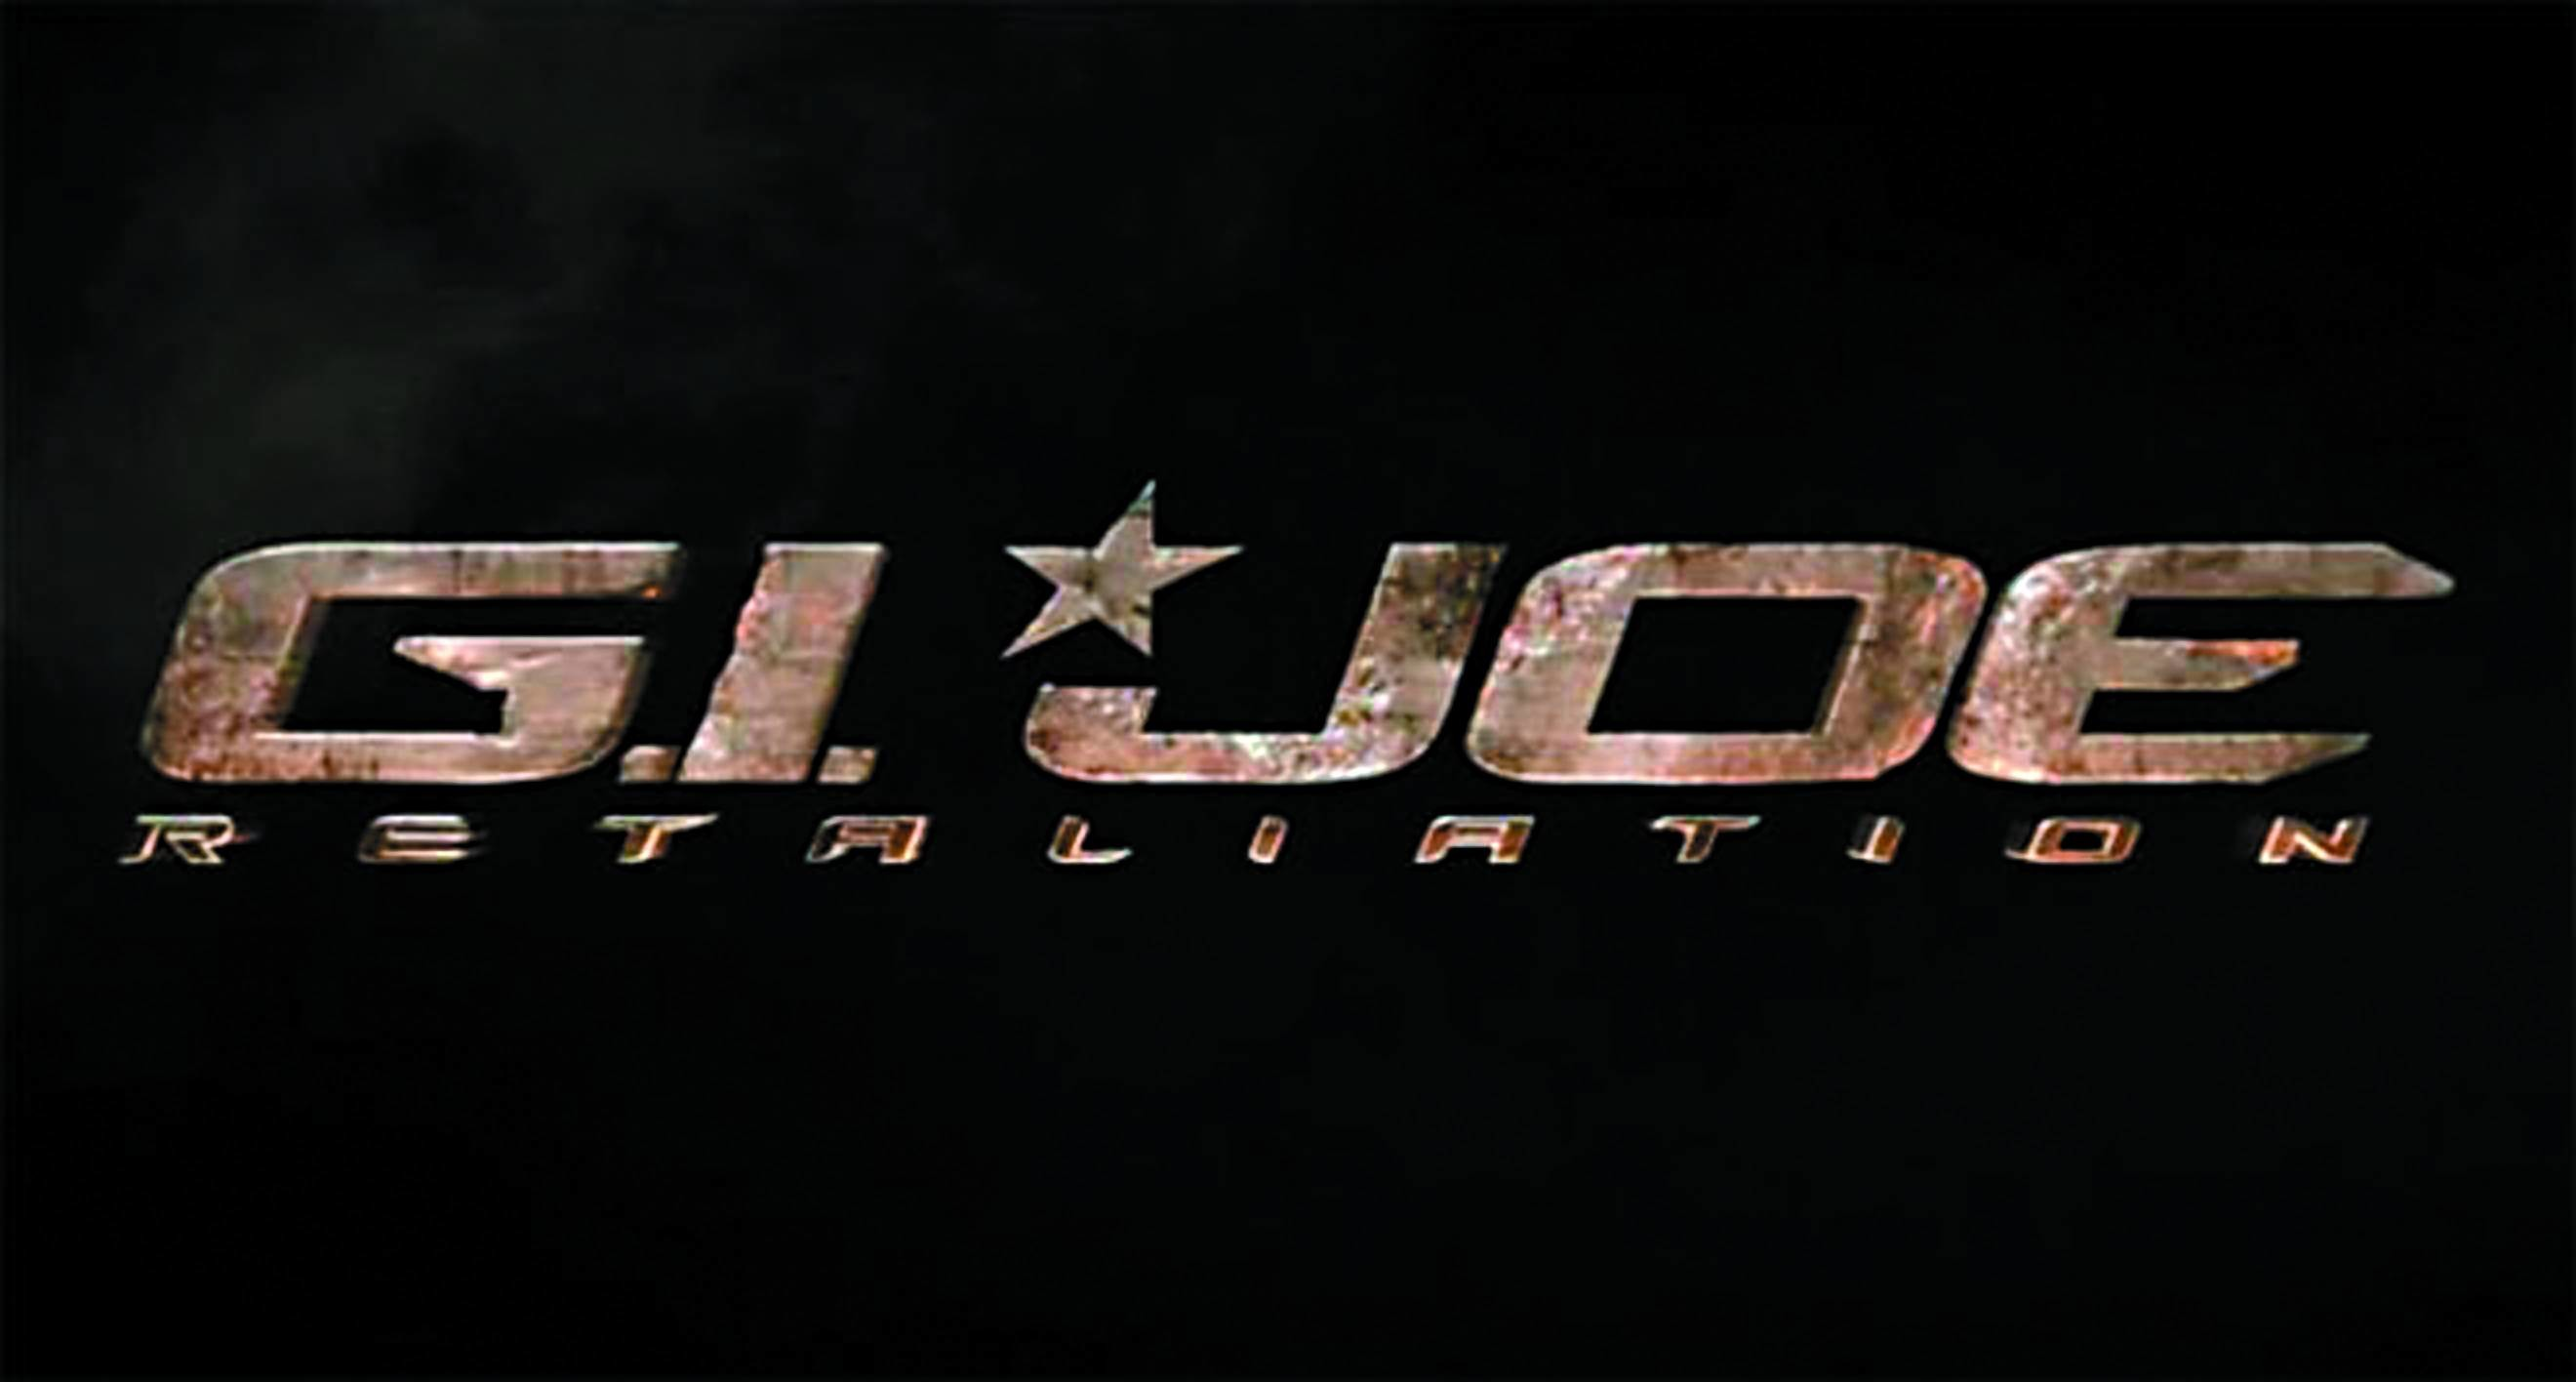 2640x1416 G. I. Joe: Retaliation Wallpaper and Backgrounds.  g_i_joe_retaliation_wallpaper_and_backgrounds_character_pictures_wallpapers_backgrounds  ...